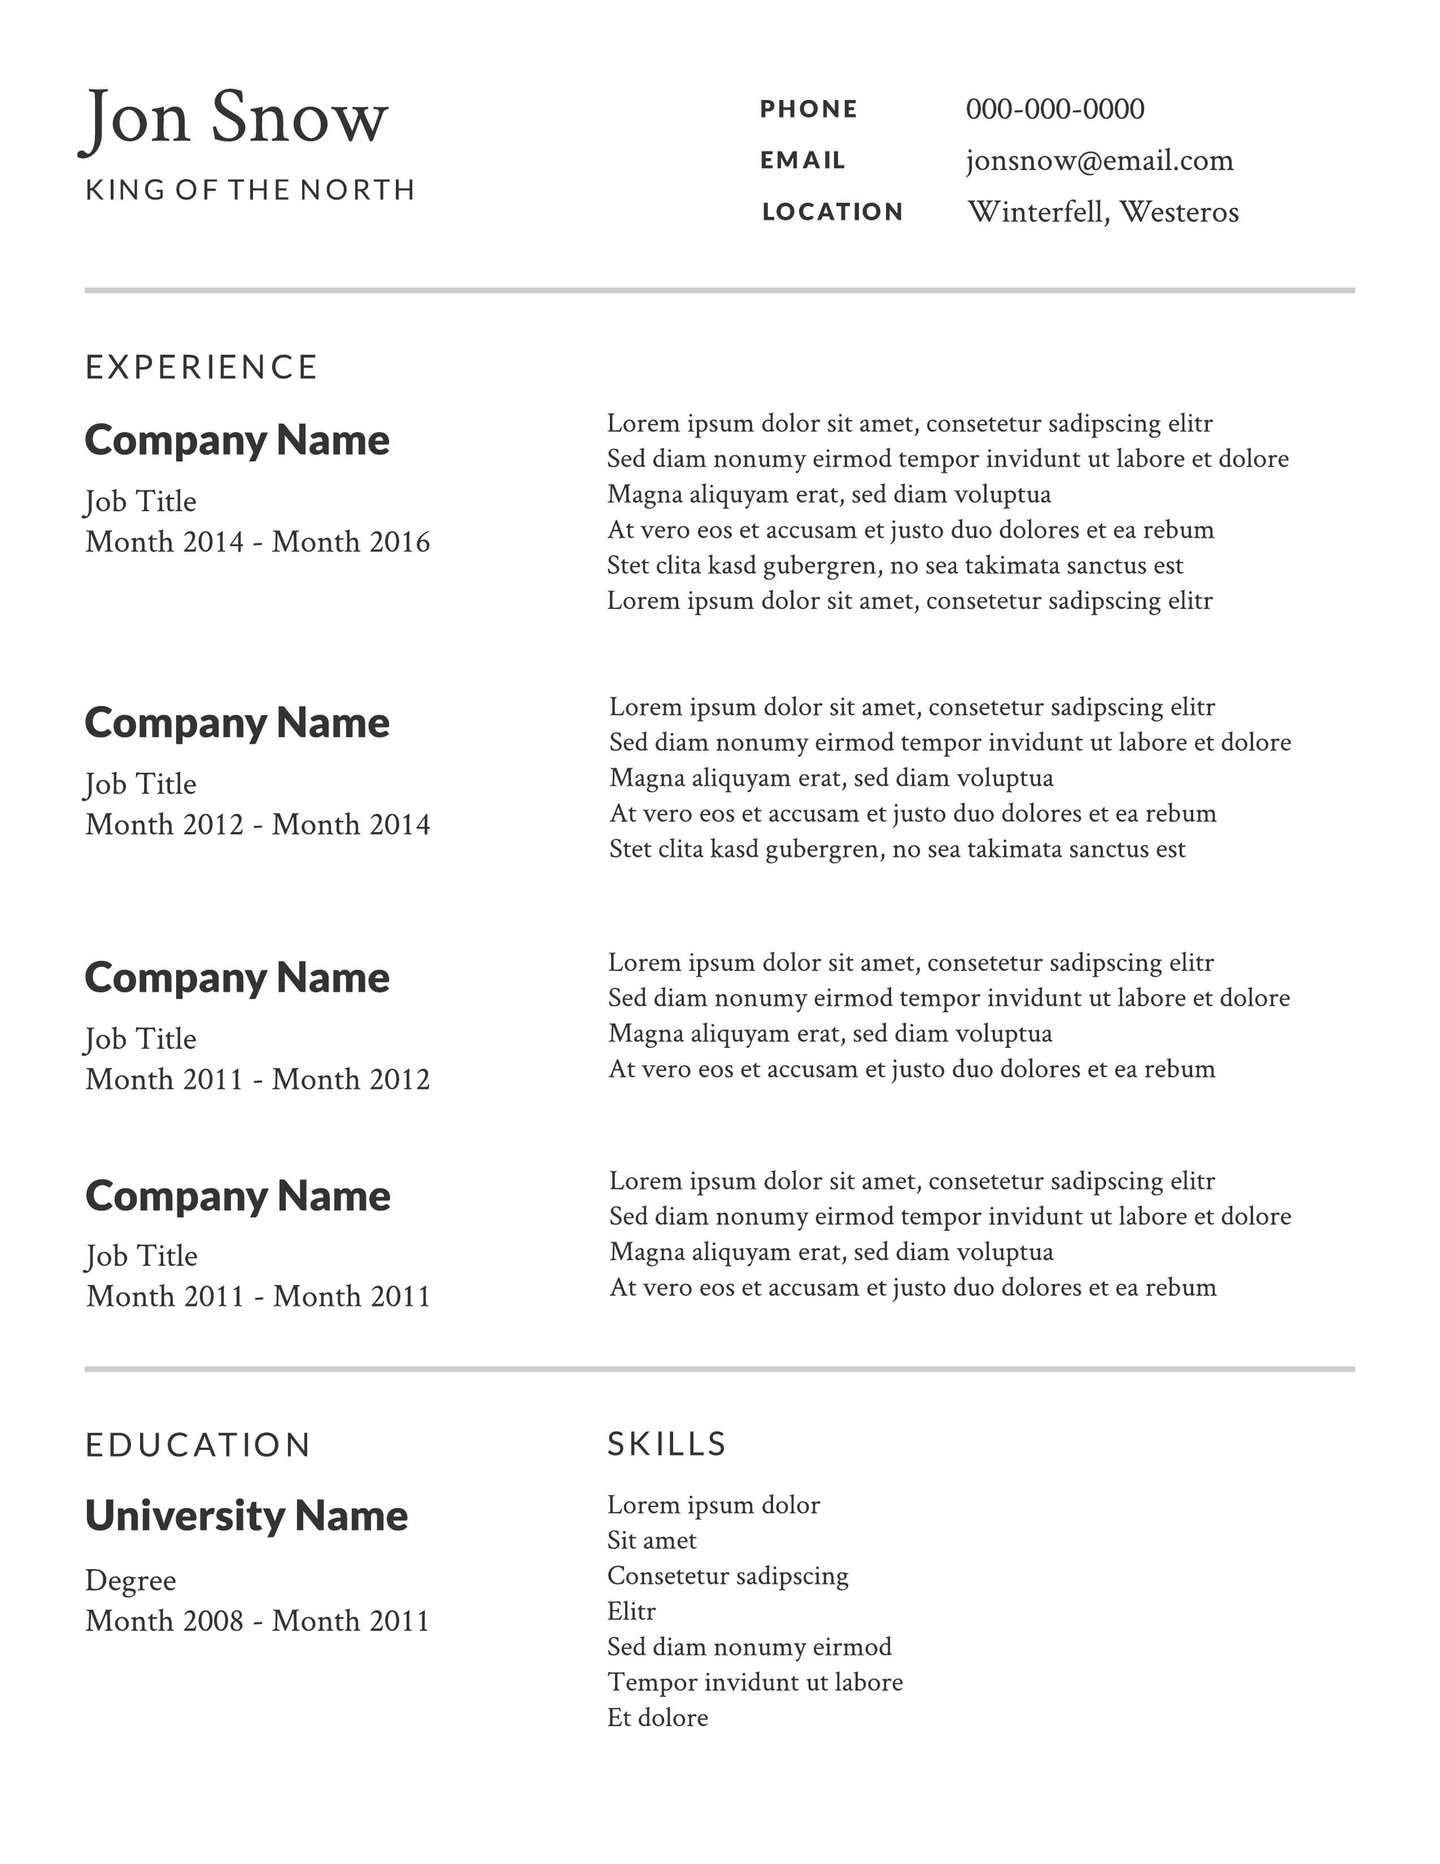 2 free resume templates examples lucidpress for Reusme templates